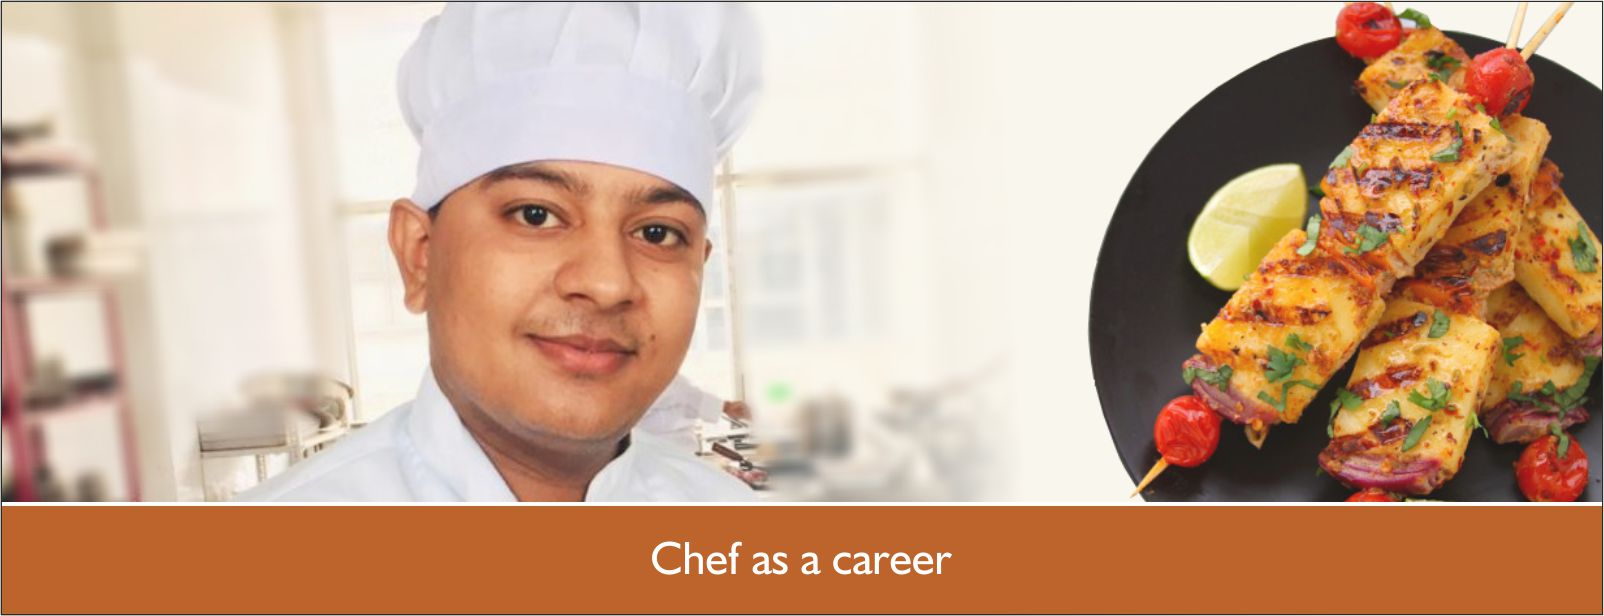 How to See Chef as a Career after 12th?